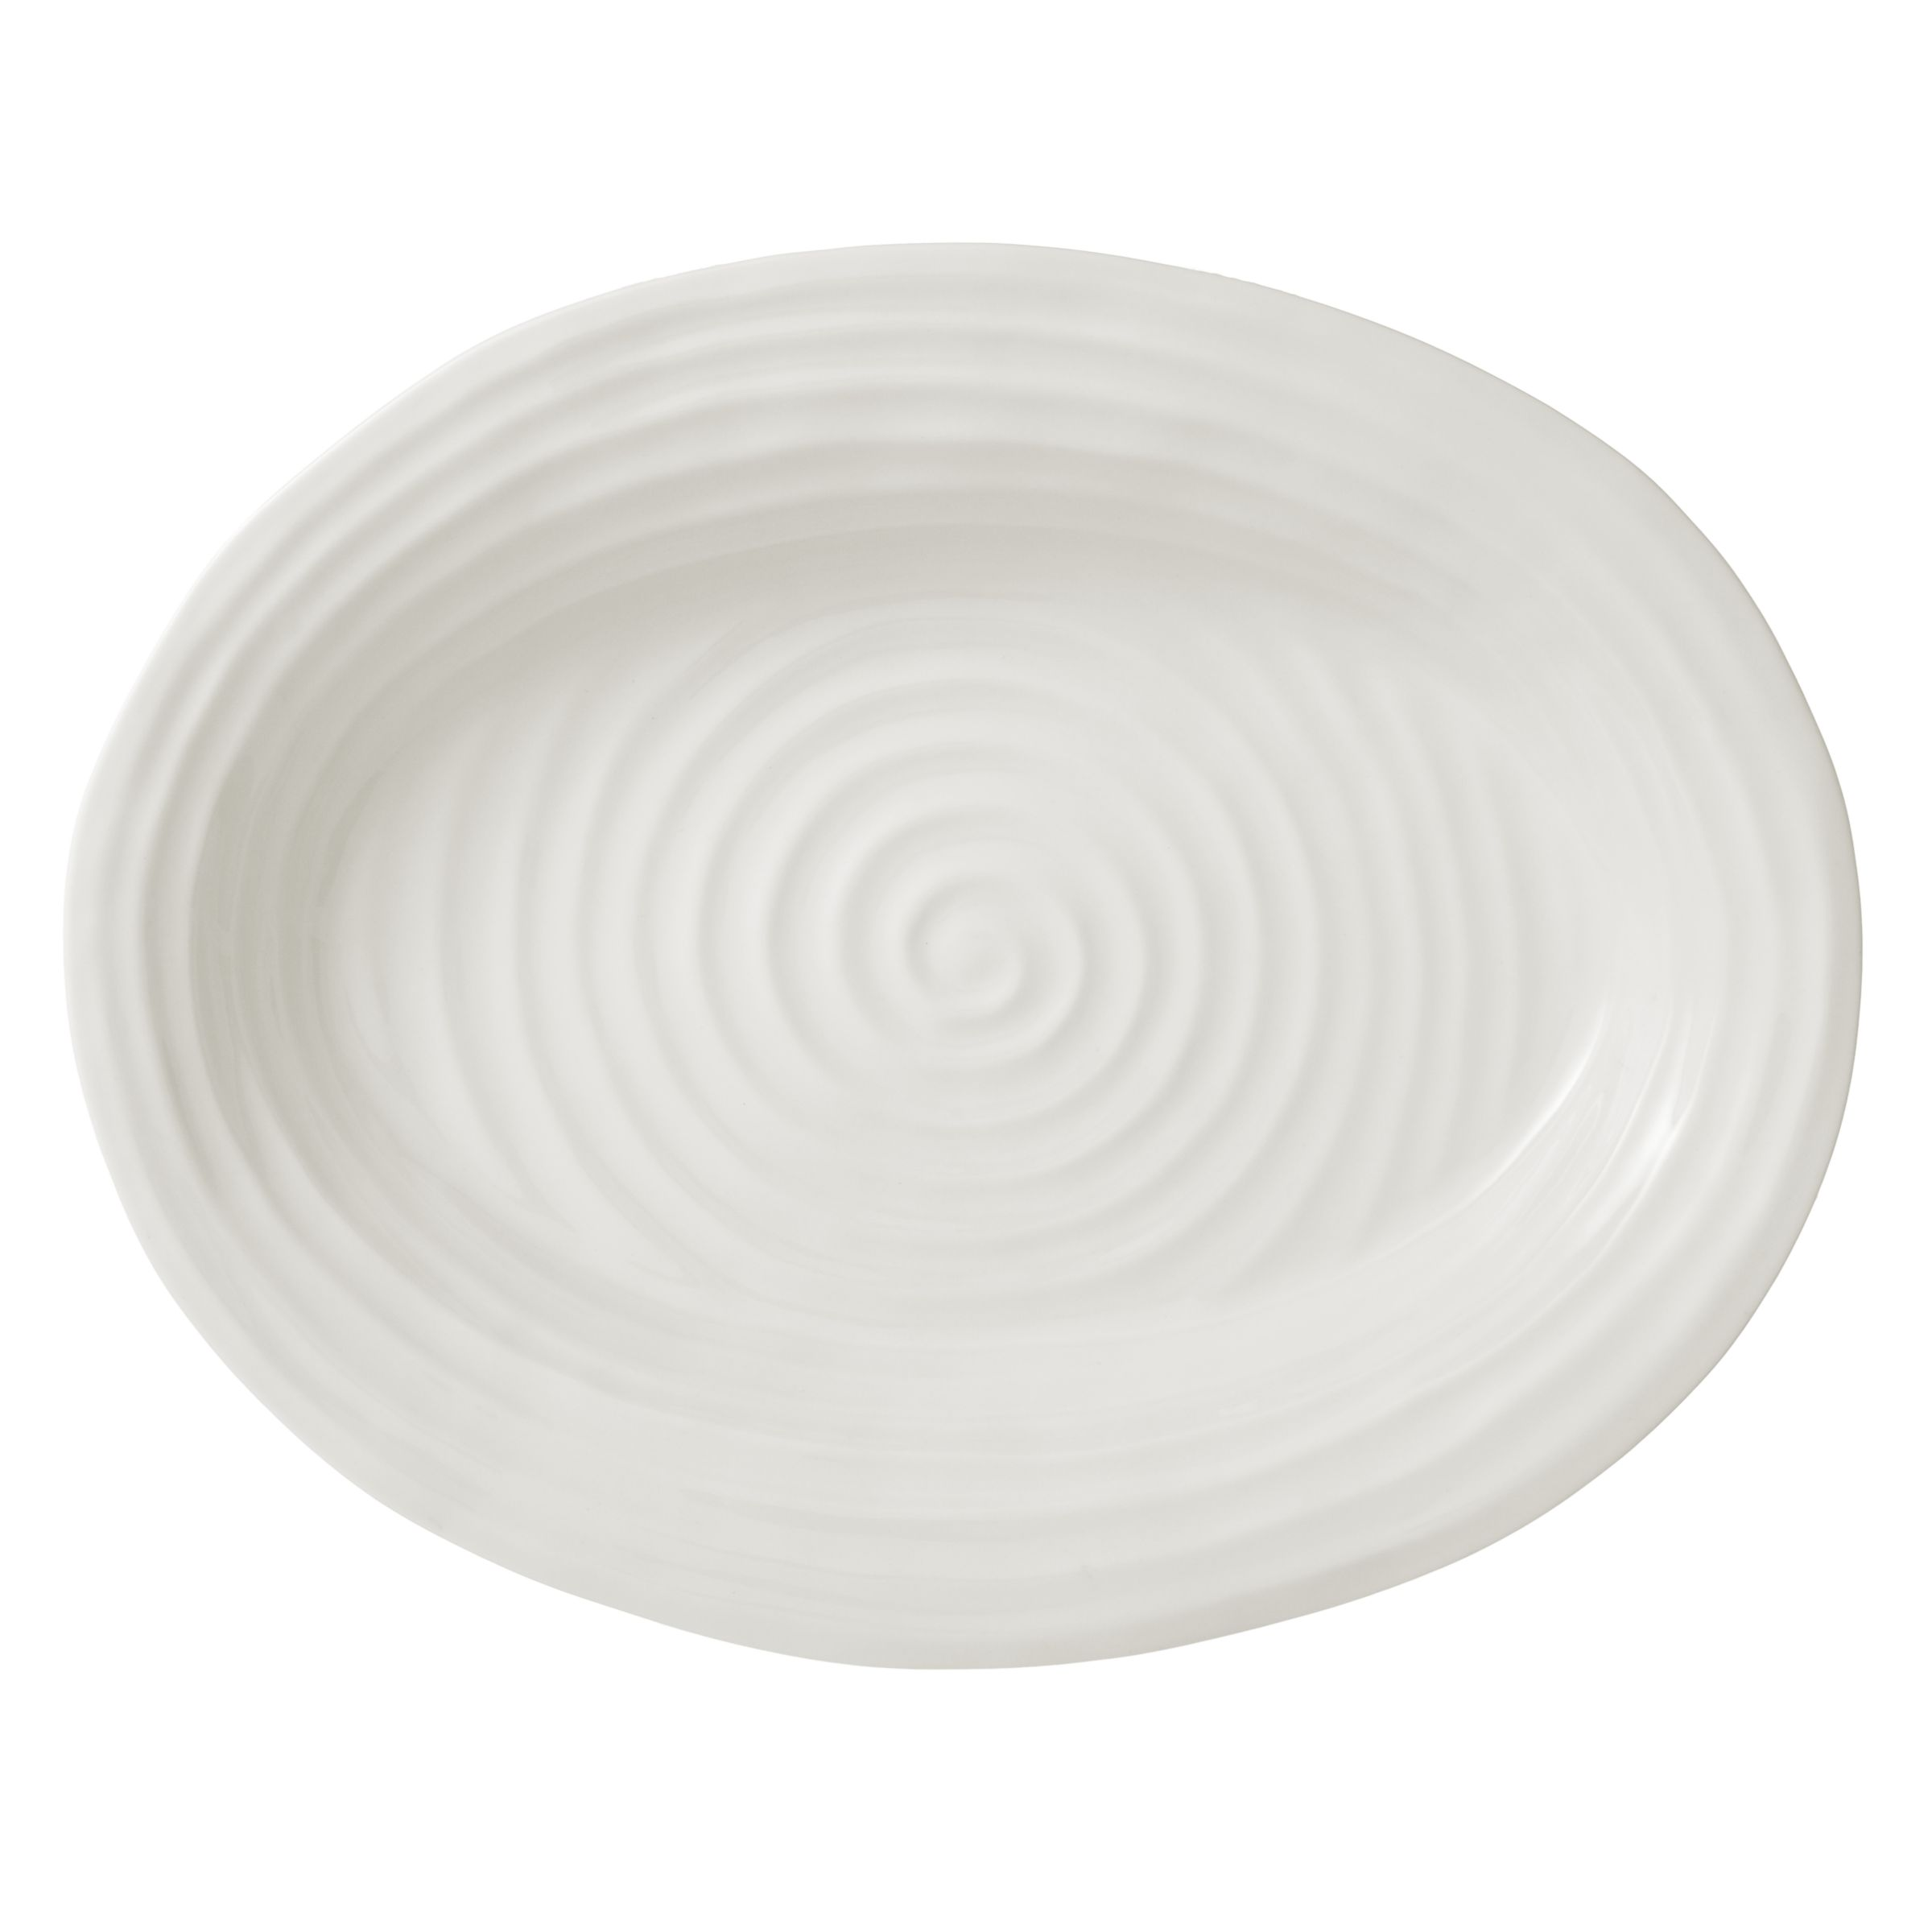 Sophie Conran for Portmeirion Sophie Conran for Portmeirion Oval Plate, White, Large, L43cm